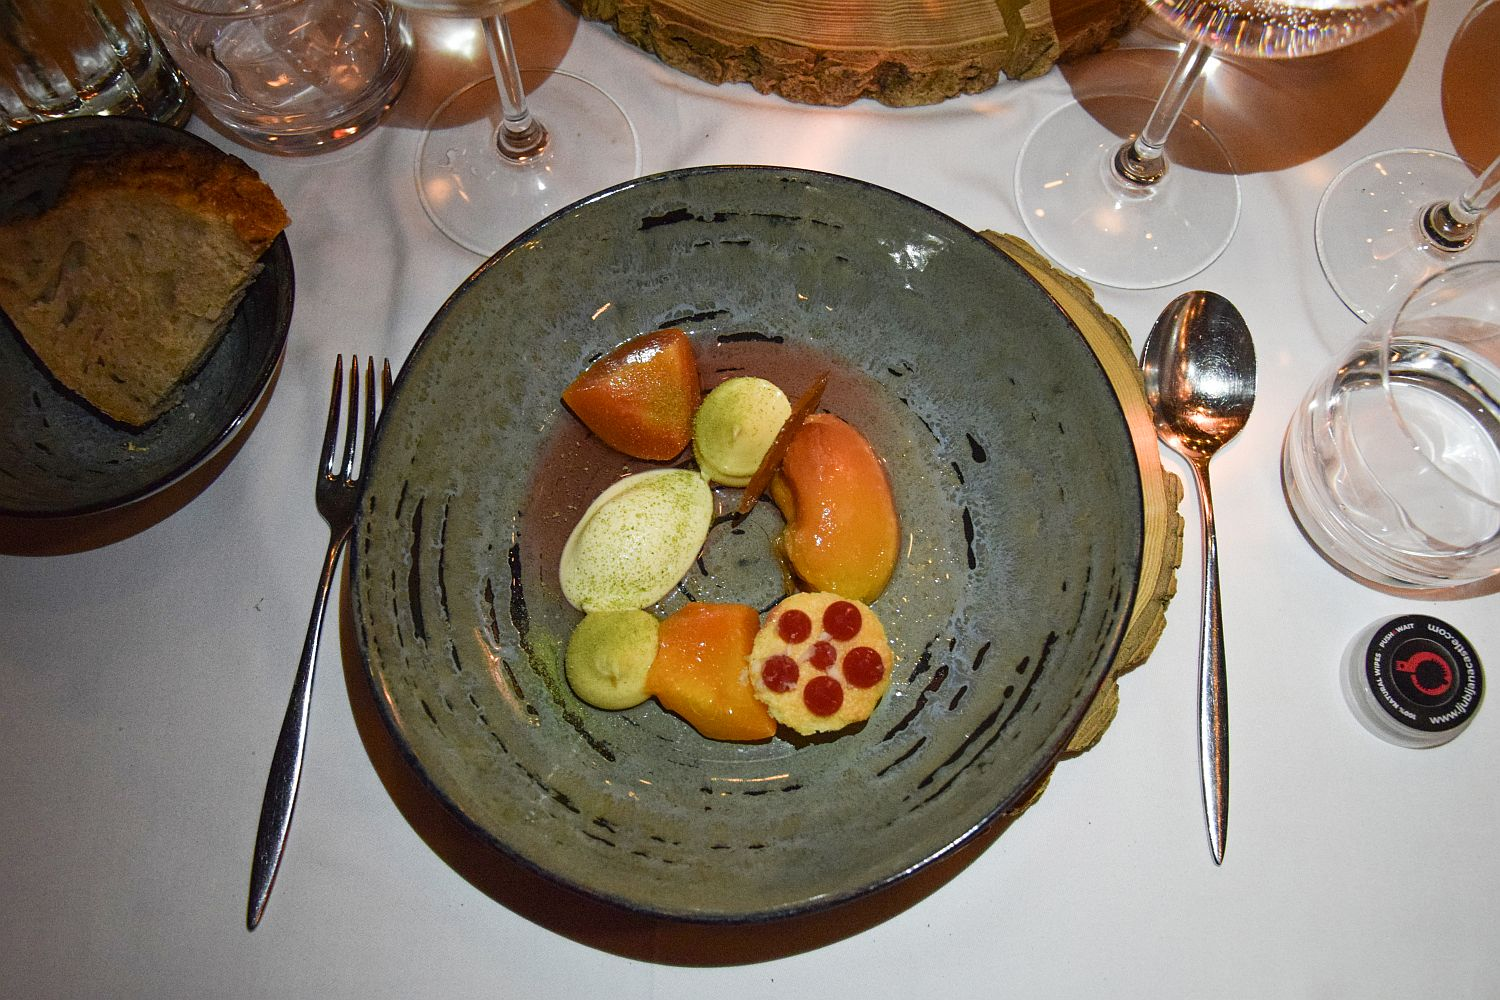 A dessert of baked peaches with smooth vanilla custard and rosemary ice cream by Strelec Restaurant chef Igor Jagodic